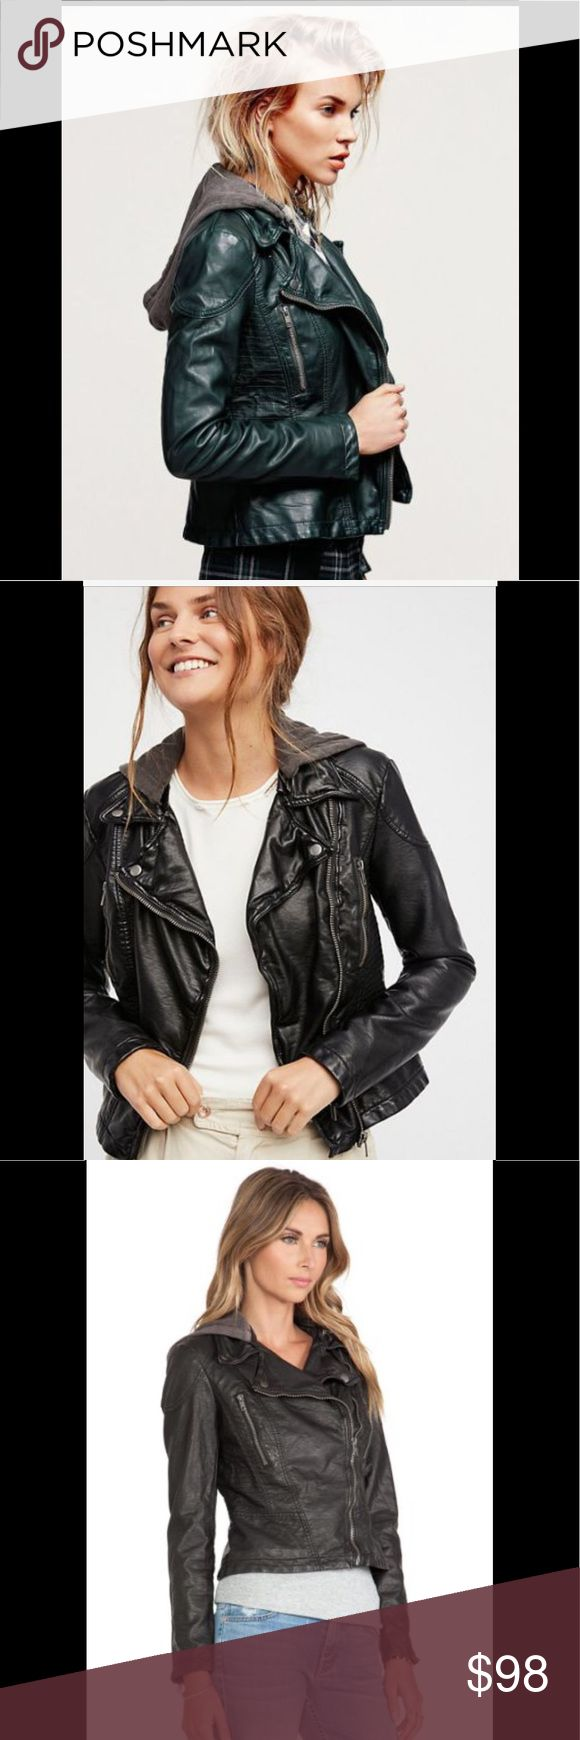 New Free People Vegan Leather Jacket New with tags. Free People vegan leather motorcycle style jacket with removable hood. Women's size 4. Retail $168.00. Free People Jackets & Coats